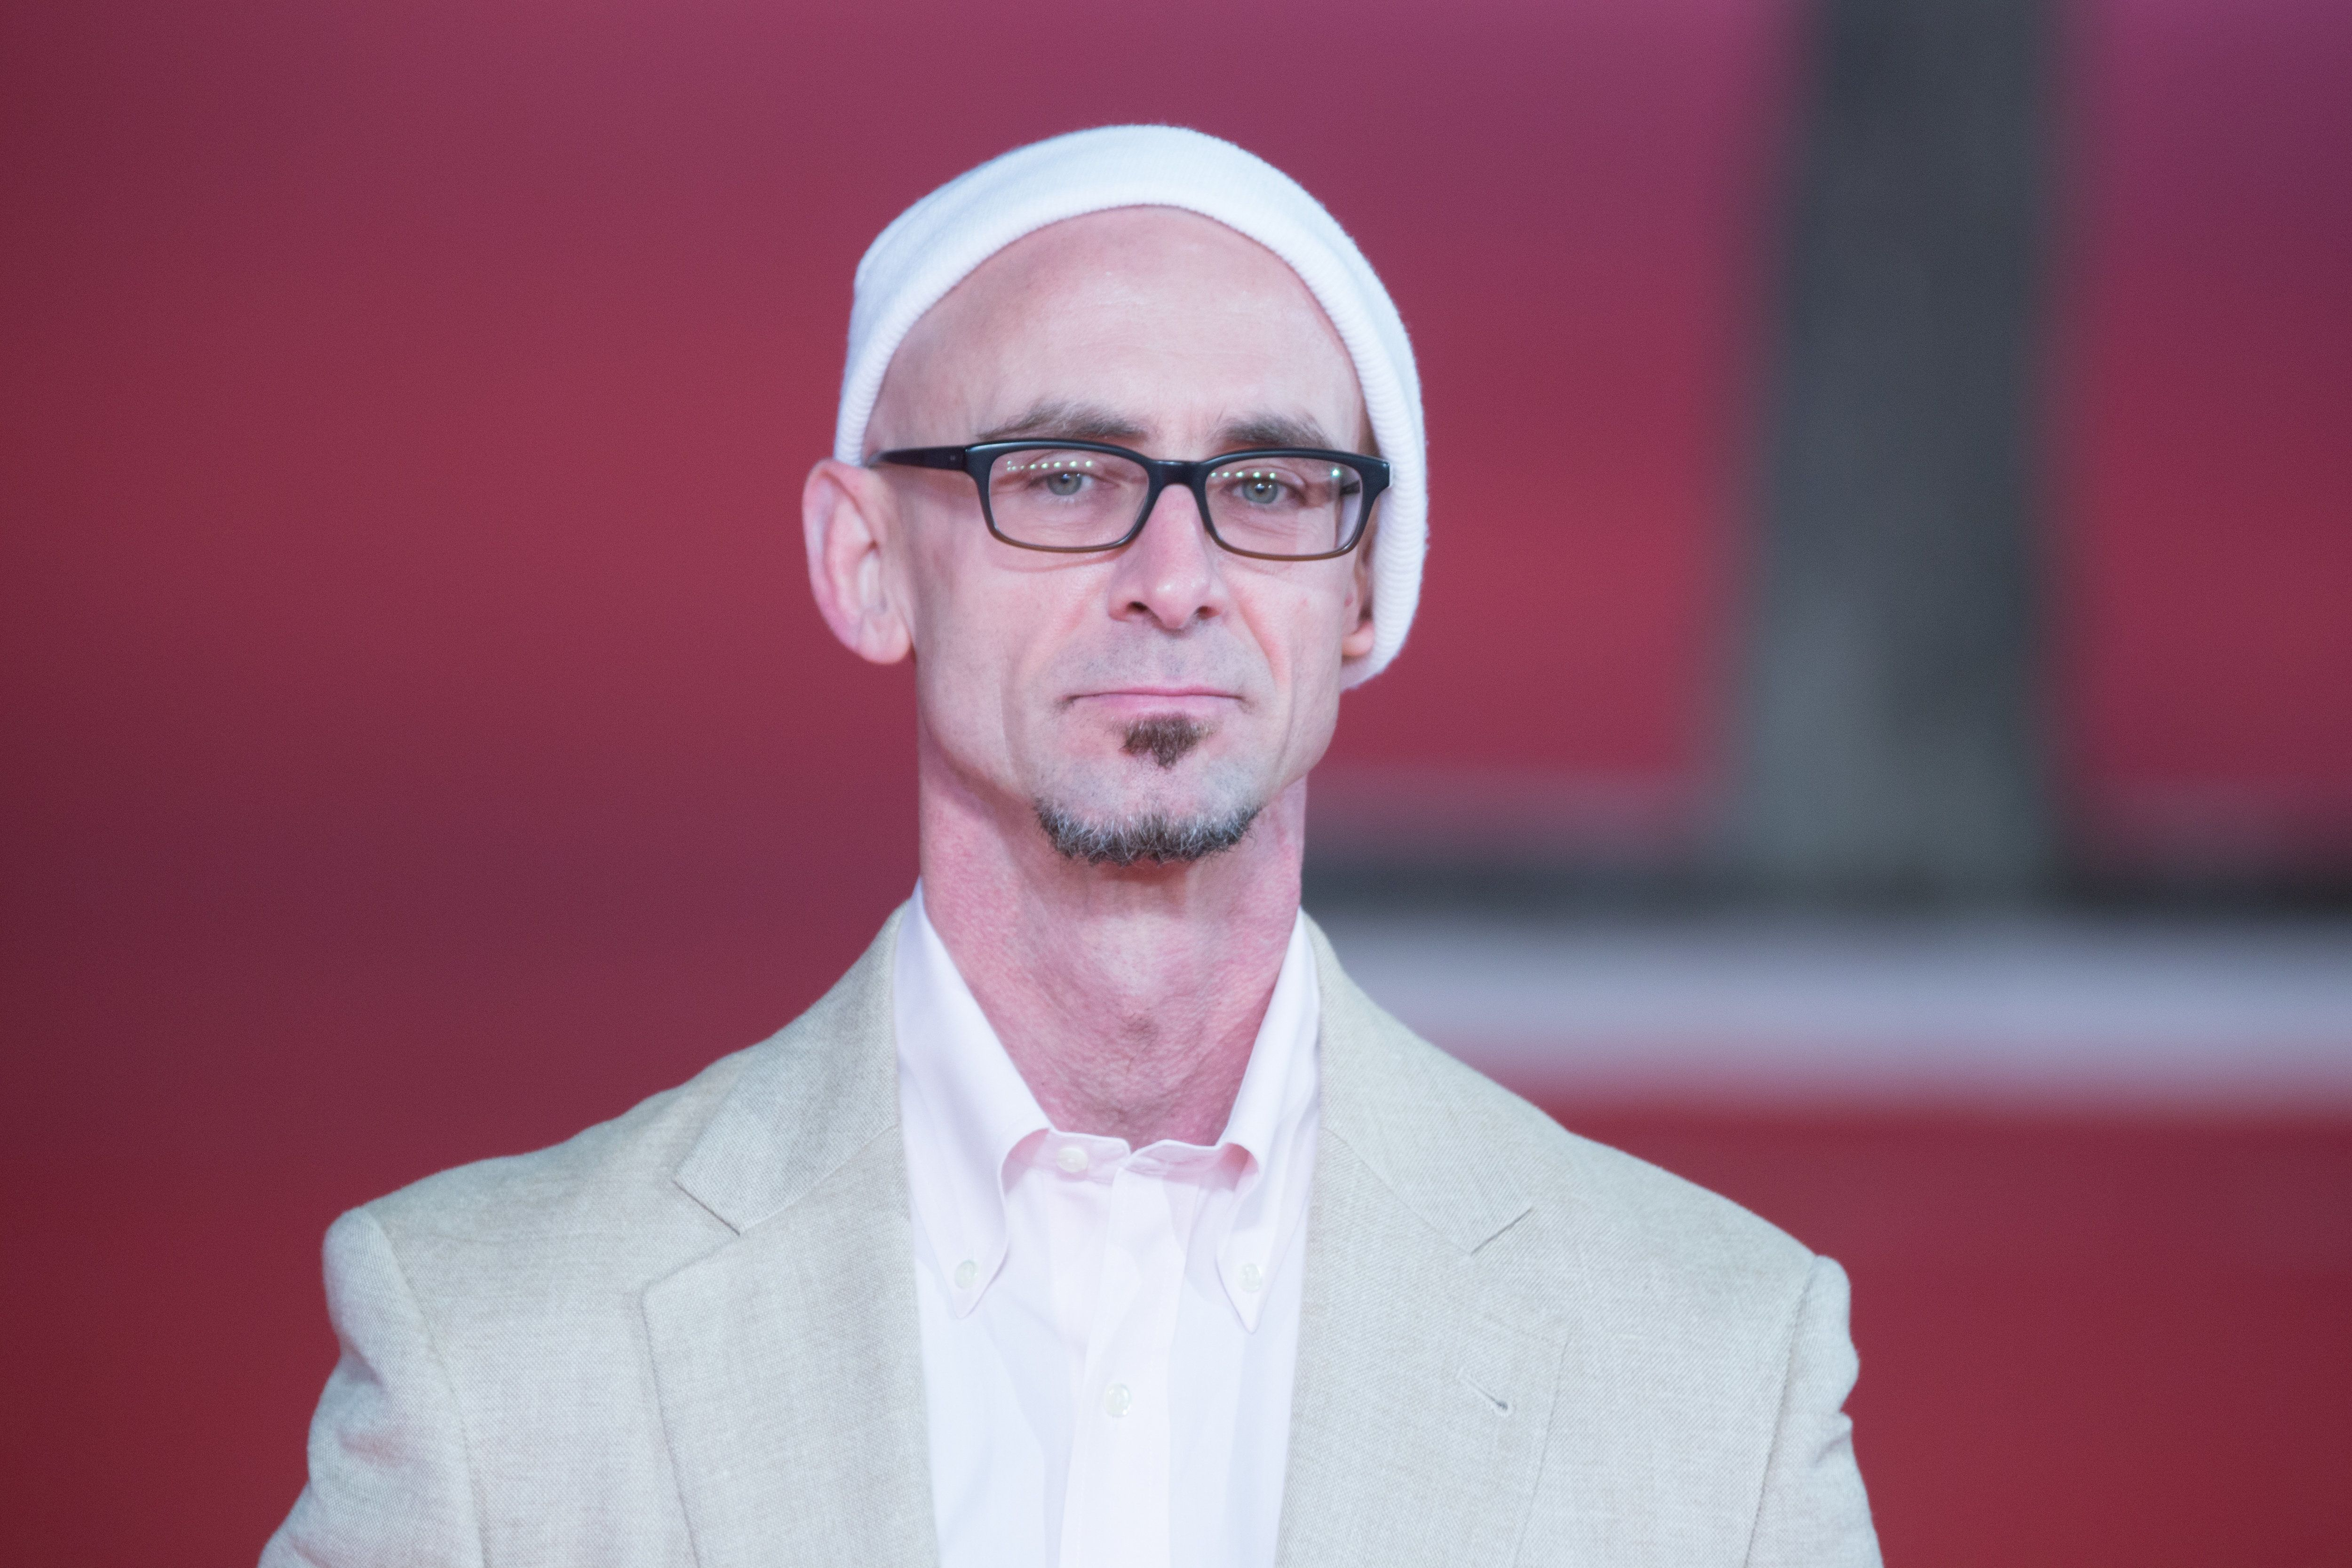 <i>Fight Club</i> author Chuck Palahniuk has become the victim of a multi-million dollar embezzlement scheme.